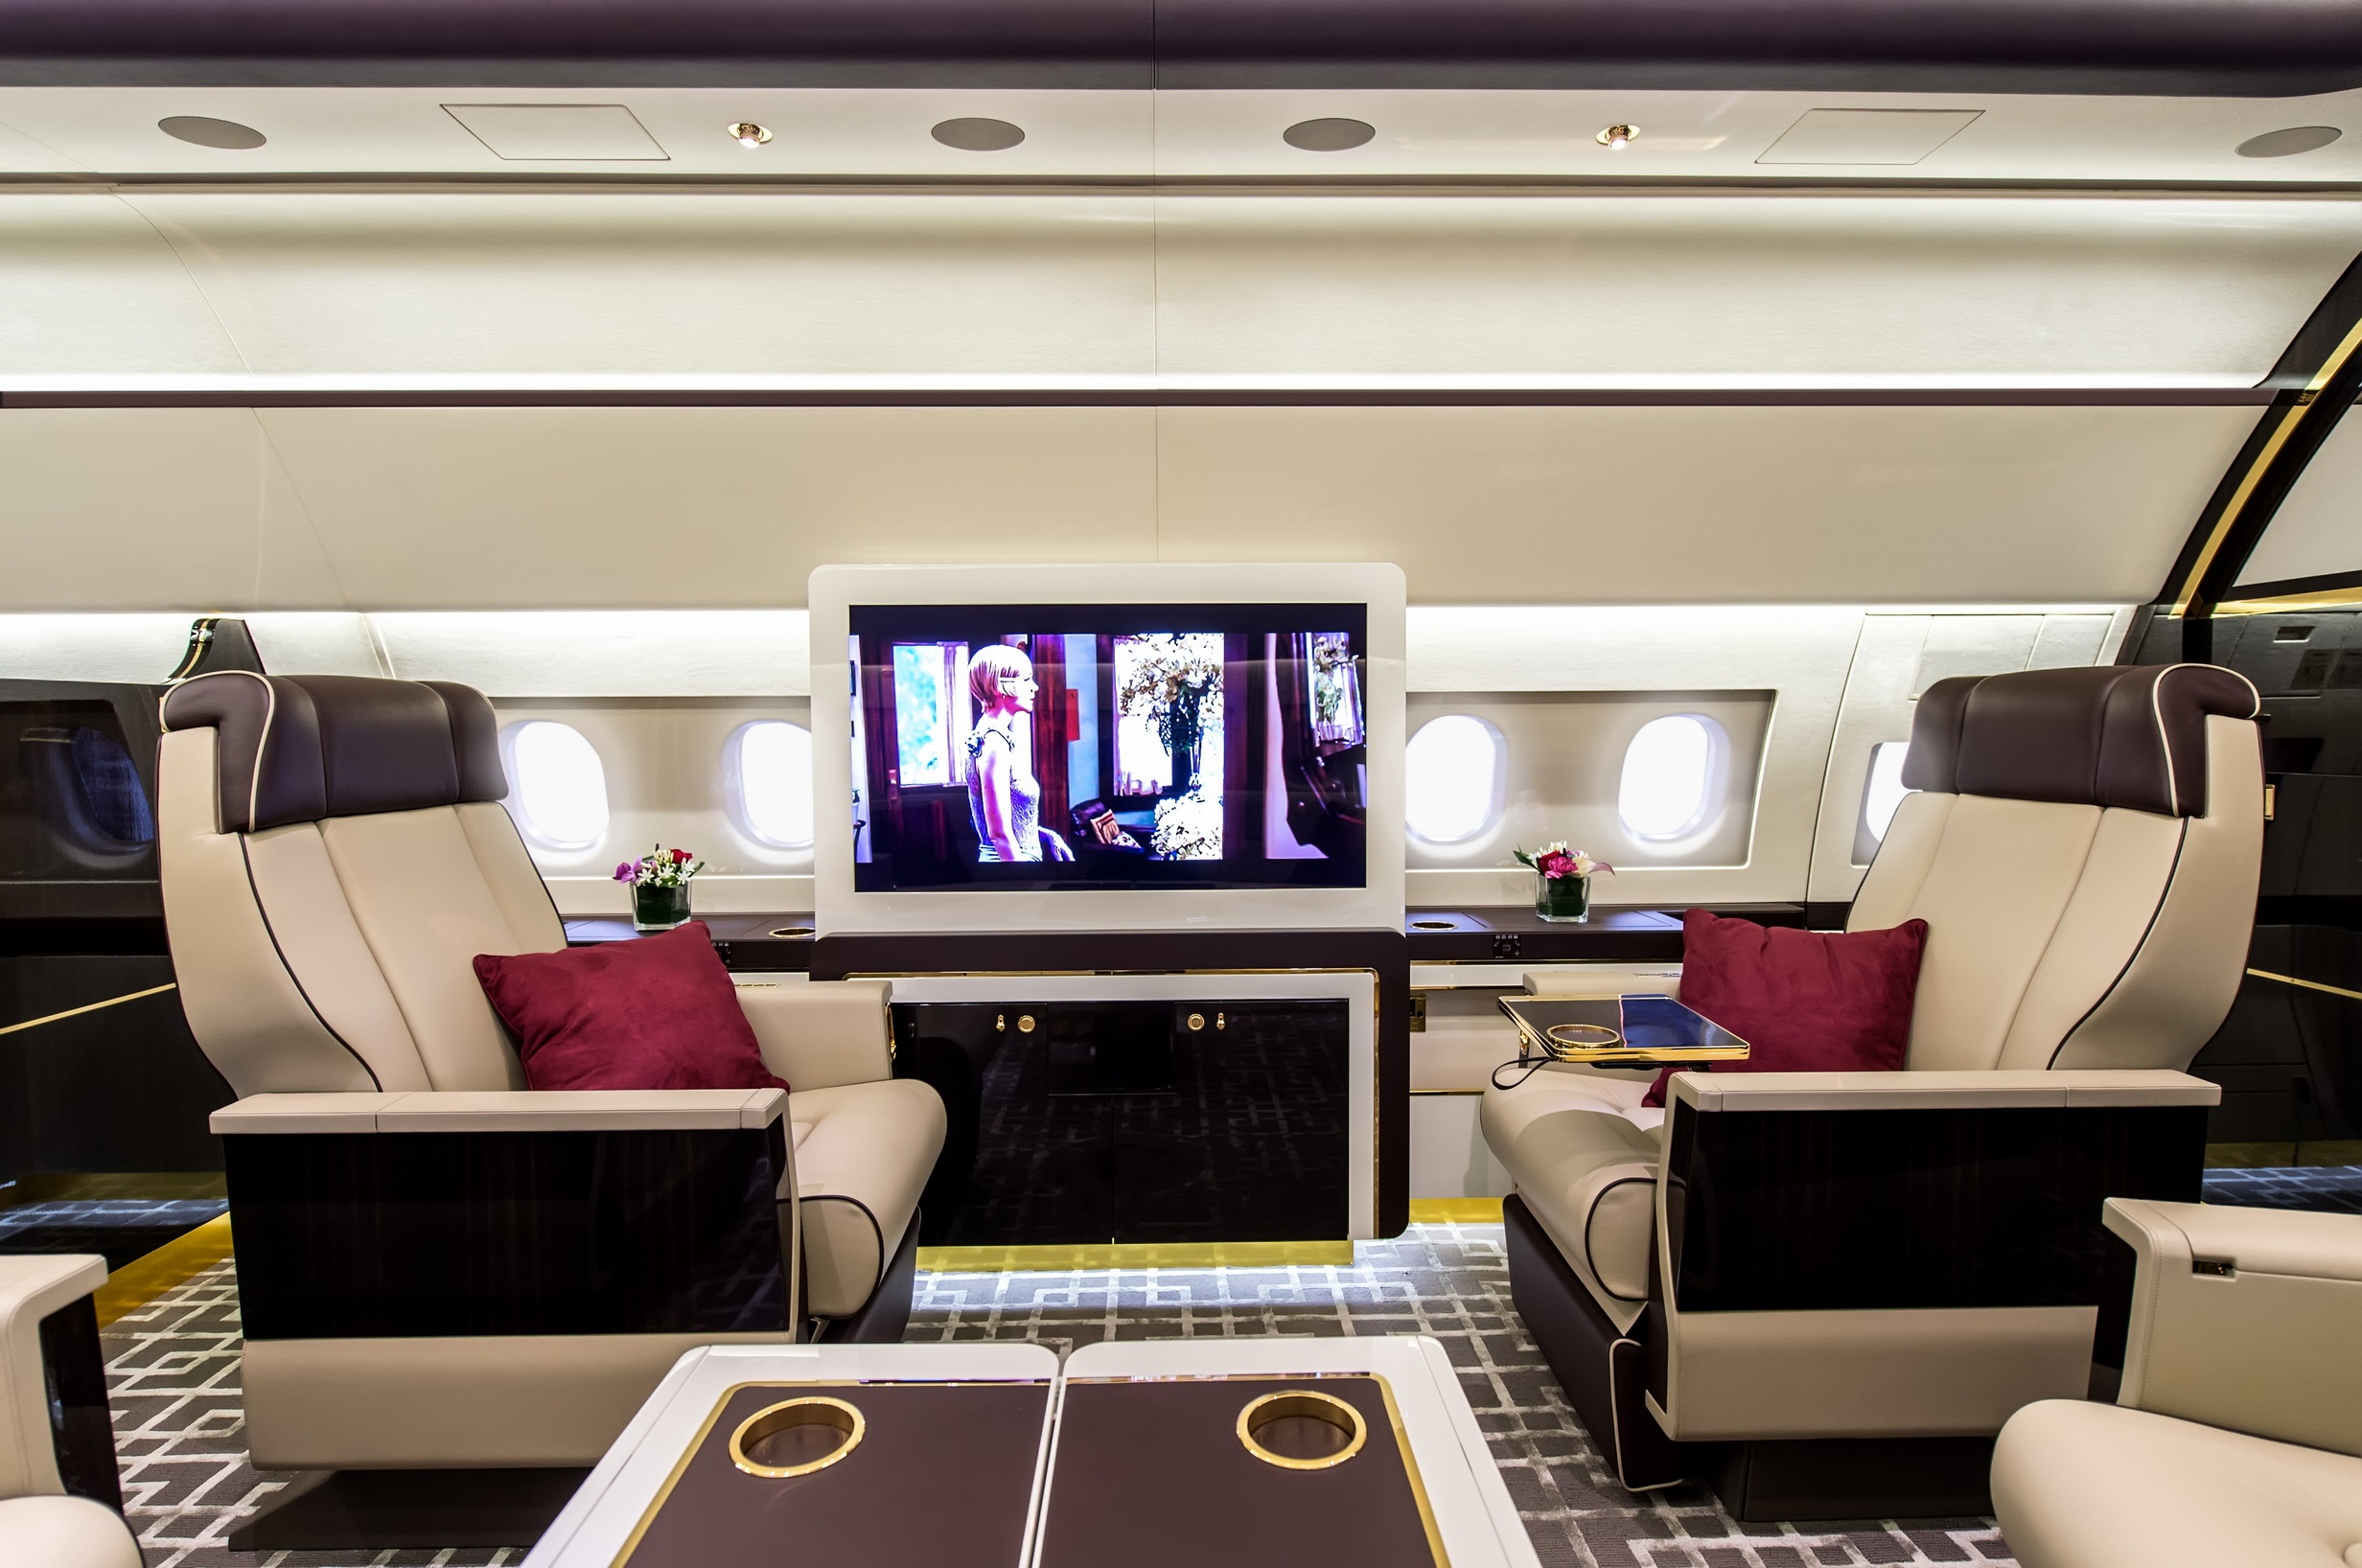 Private jet interior furnished like a vintage train aviation - Http Www Spearswms Com Wp Content Uploads 2016 02 Mainj33 Jpg